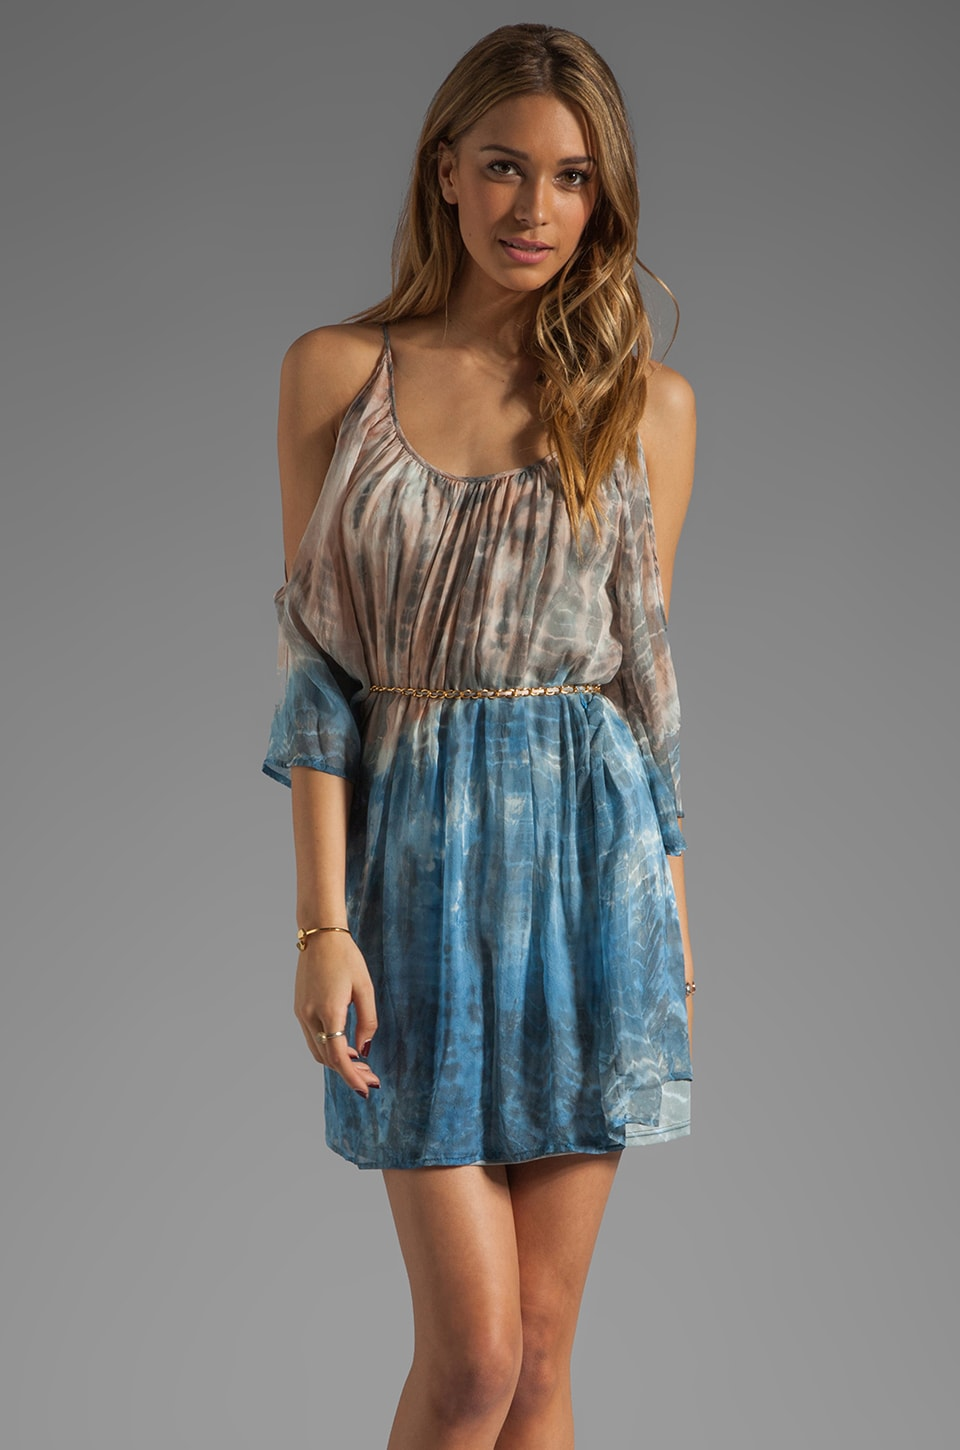 Akiko Open Shoulder Dress in Tie Dye